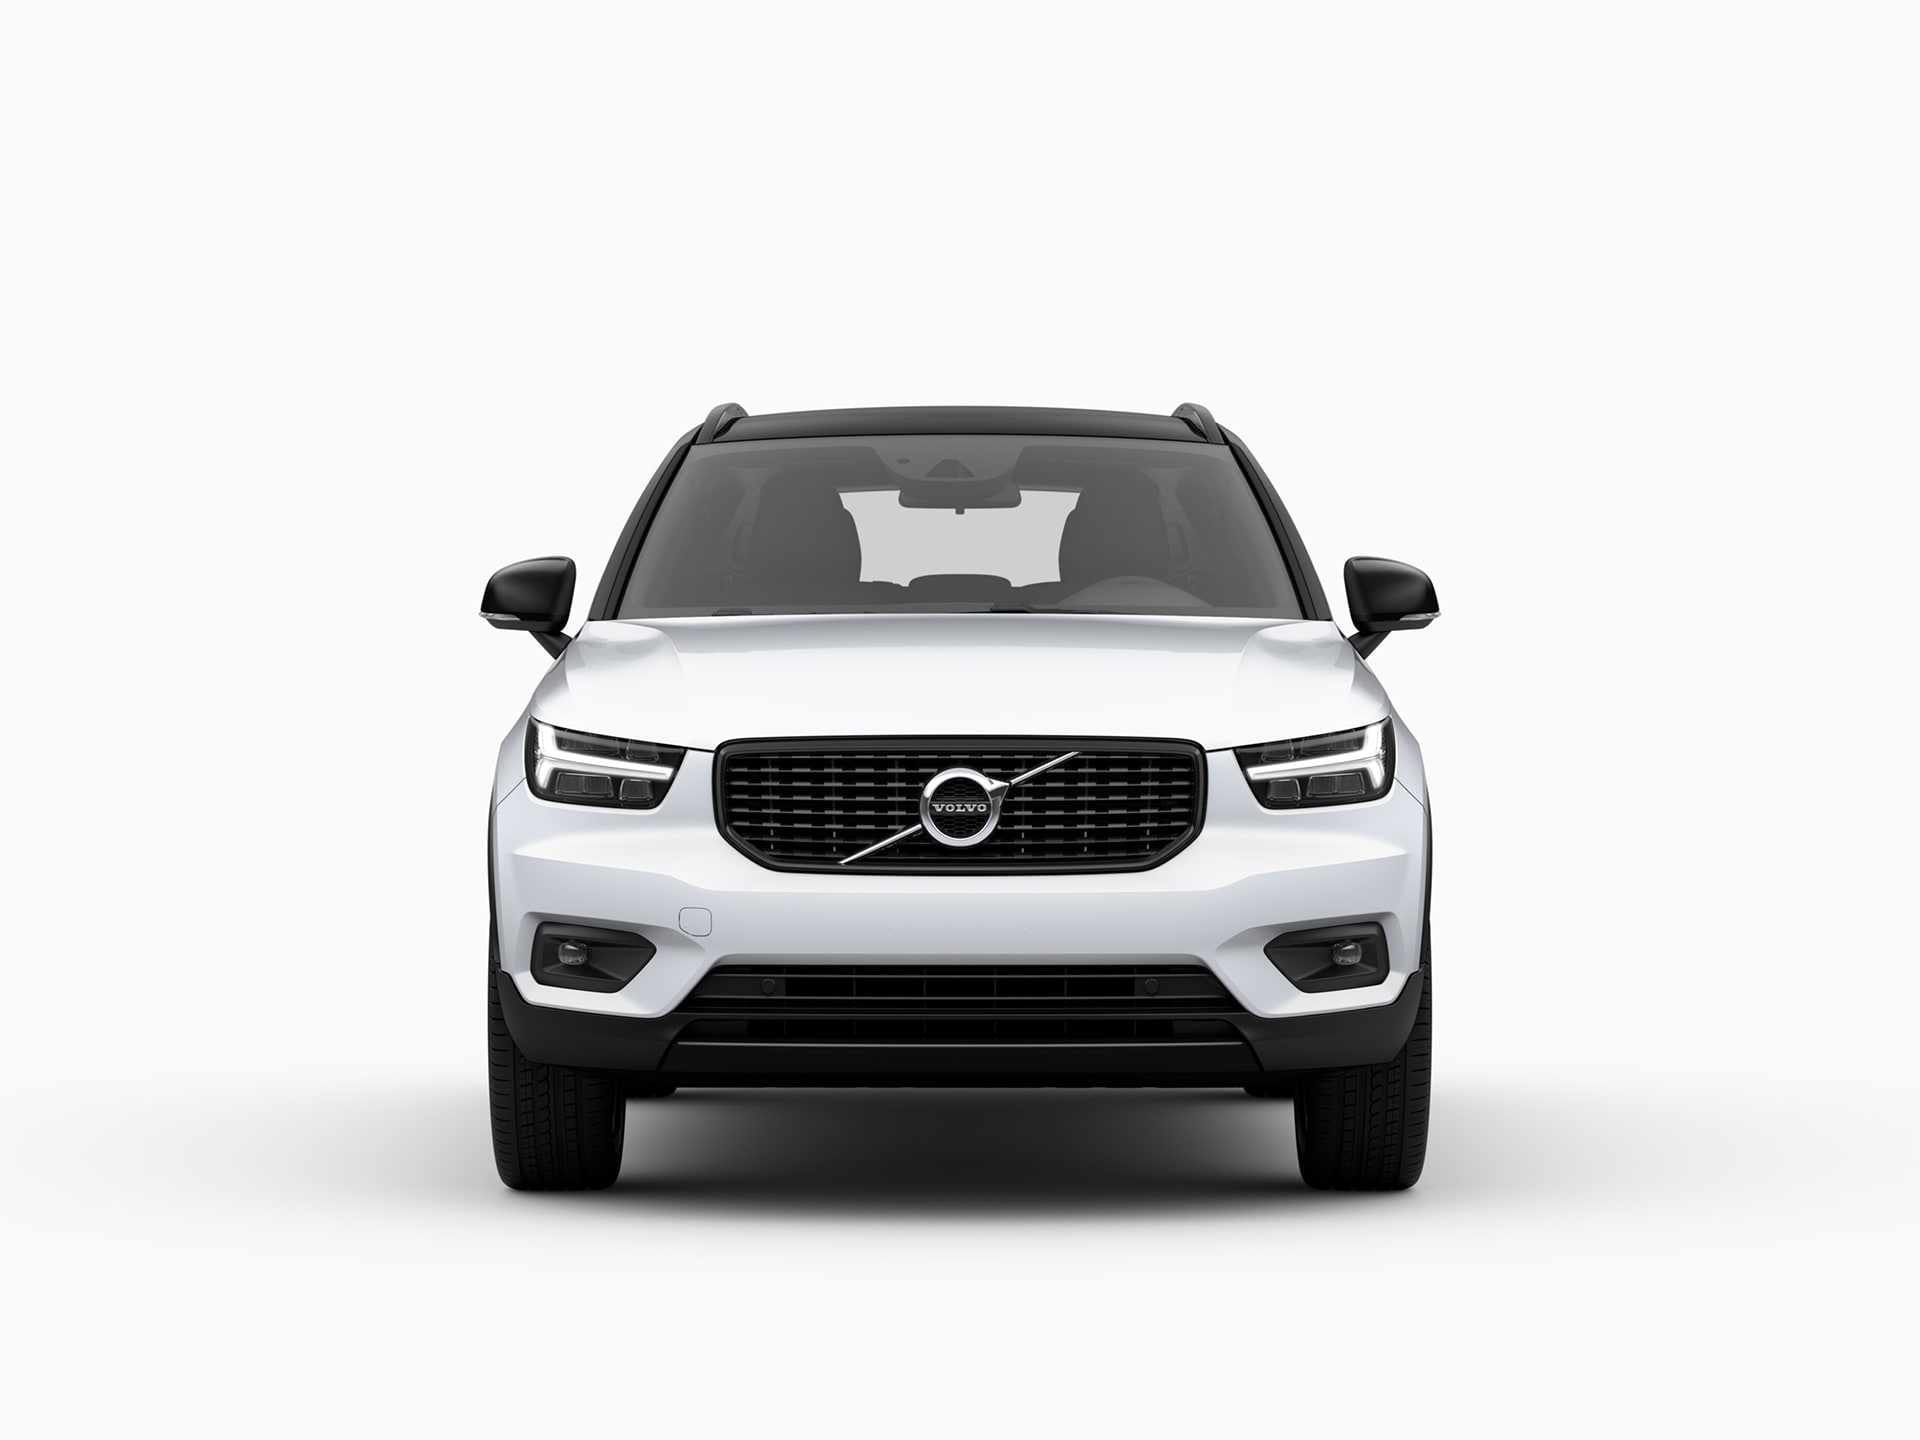 The front of a Volvo XC40 Recharge plug-in hybrid SUV.